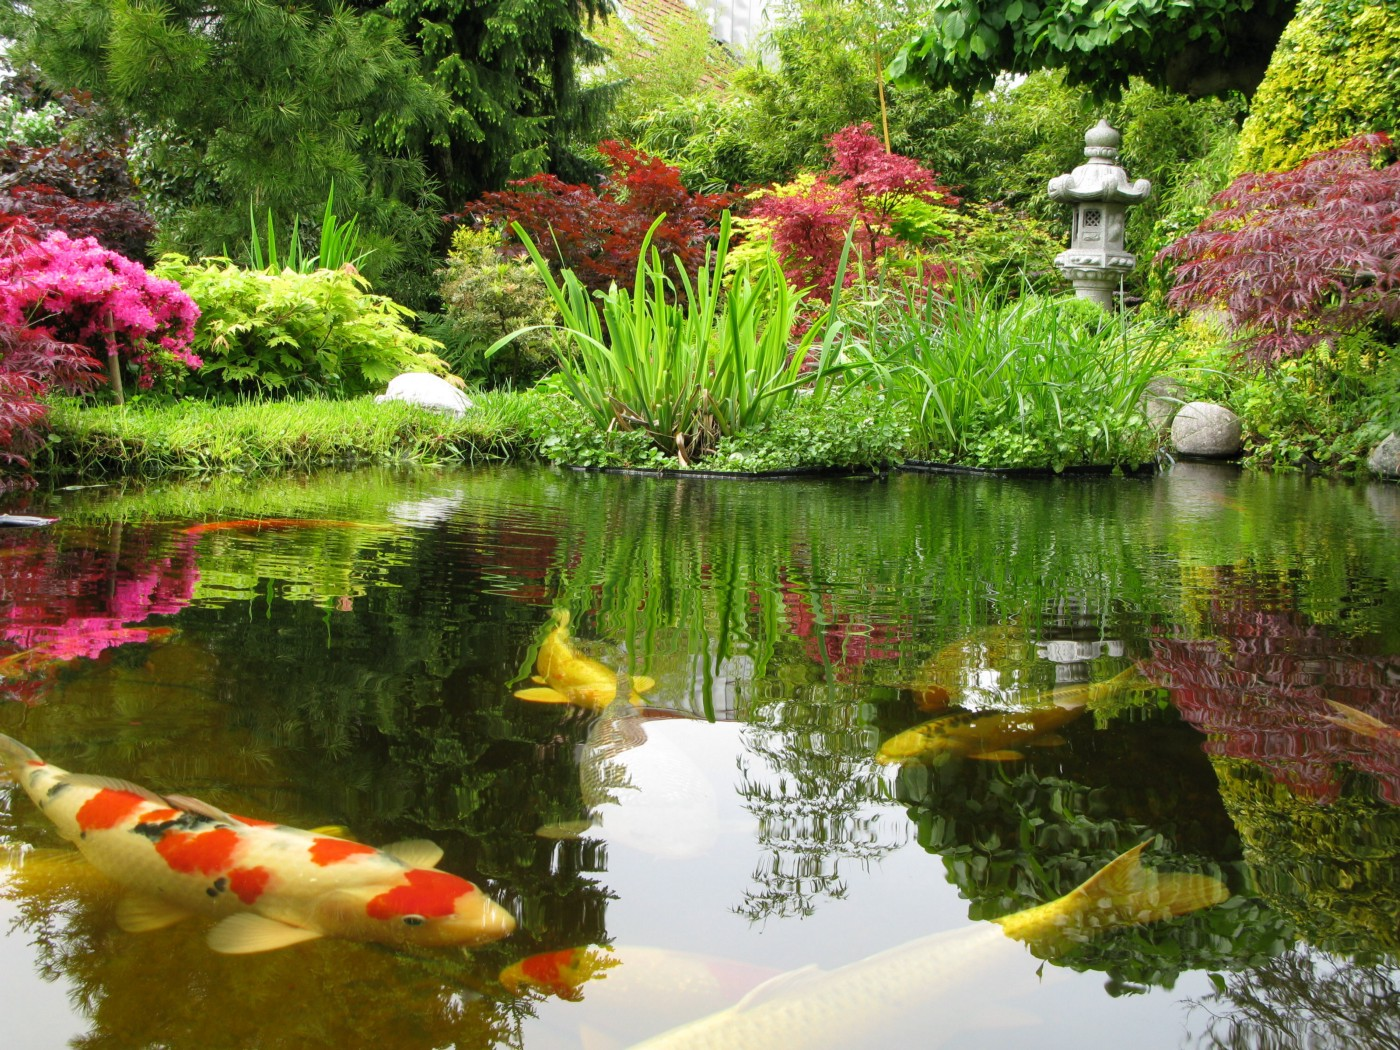 Picture of a beautiful pond with koi fish swimming in it